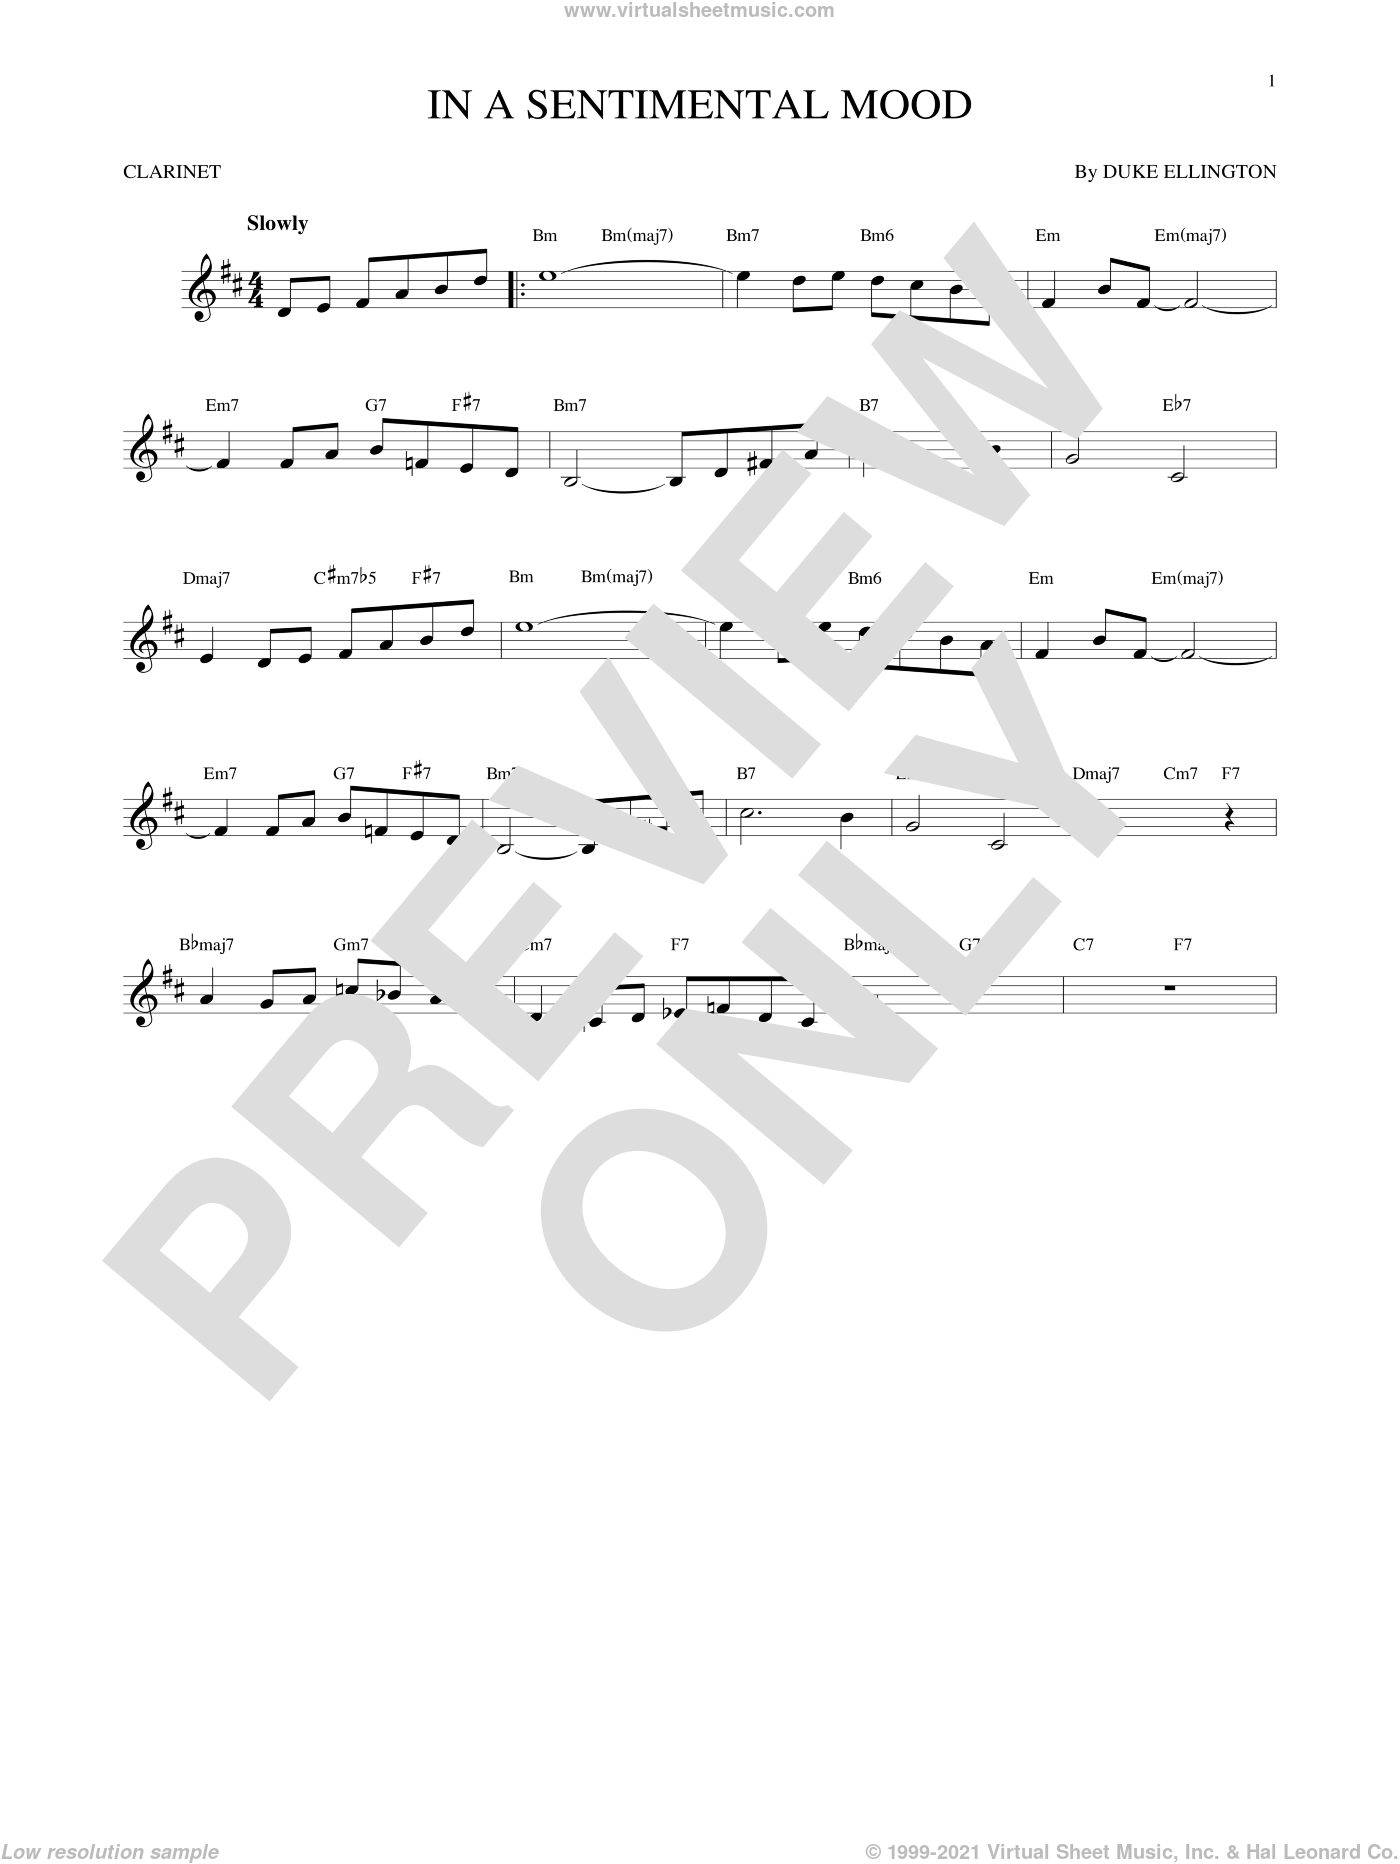 In A Sentimental Mood sheet music for clarinet solo by Duke Ellington, Irving Mills and Manny Kurtz, intermediate skill level